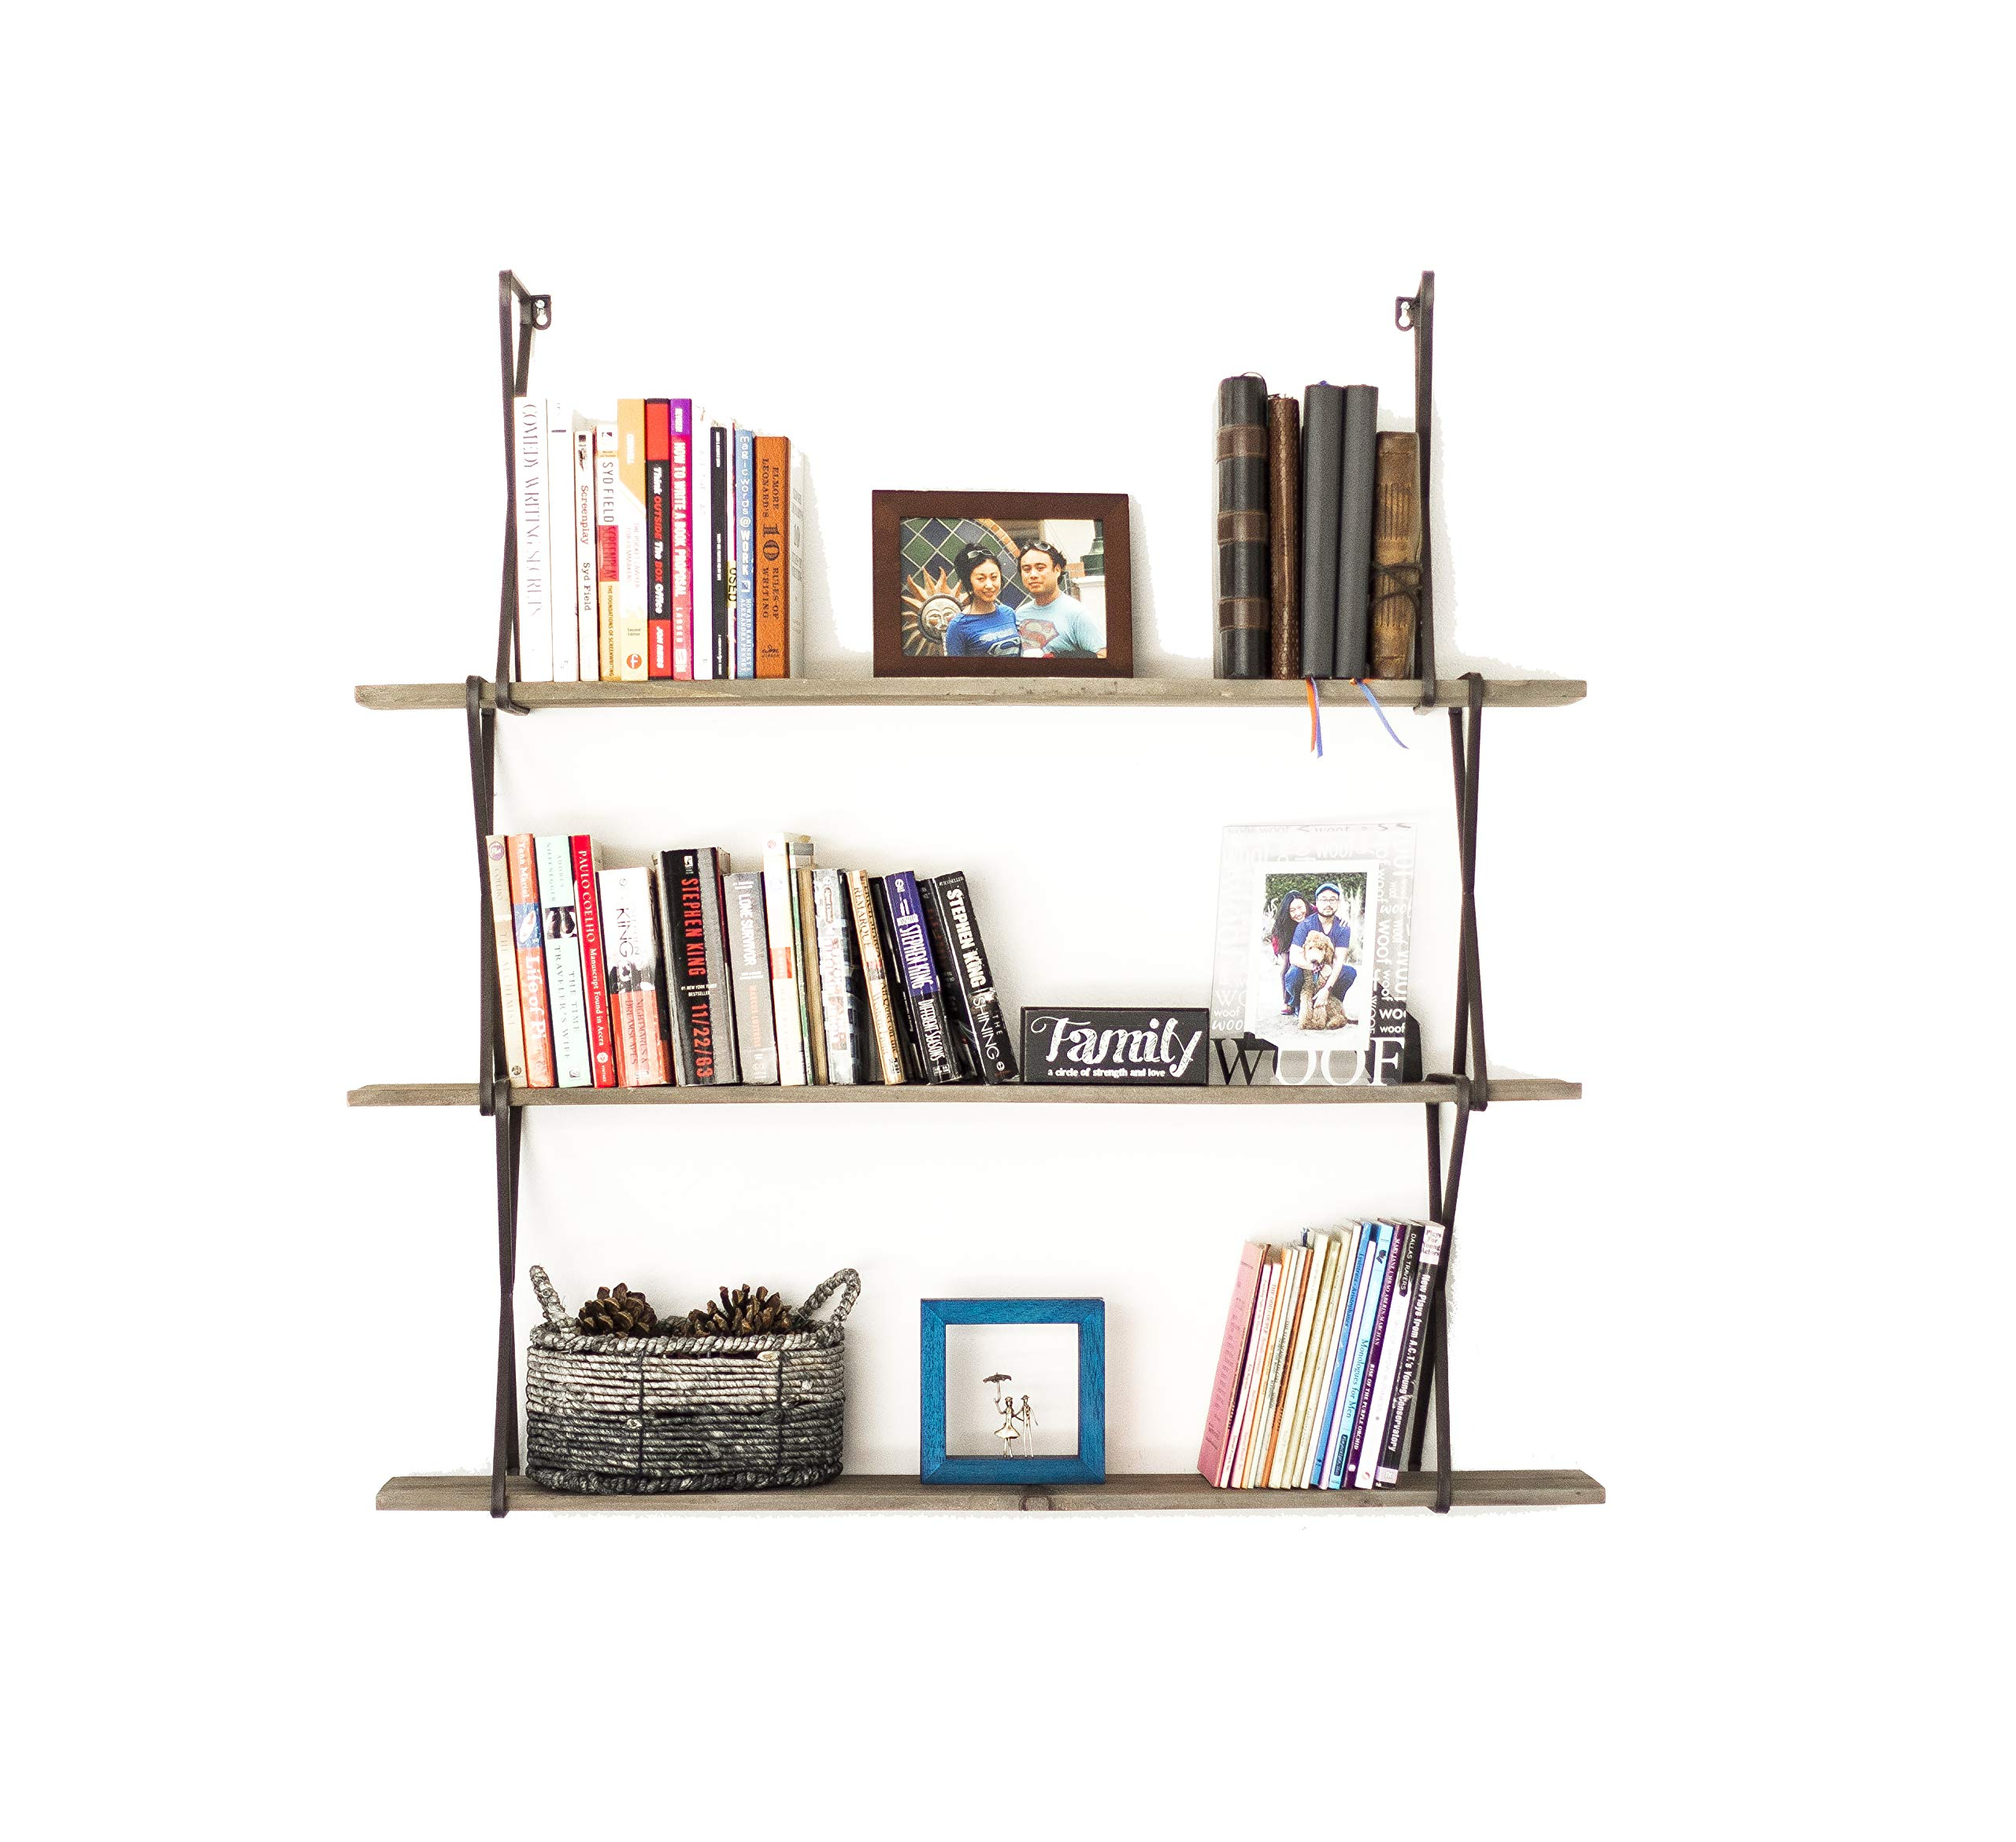 Avignon Home 3 Tier Wall Mounted Floating Bookcase Book Shelf Rustic Wood Hanging Book Case for Storage, Display Decor, Bookshelves, Organizer